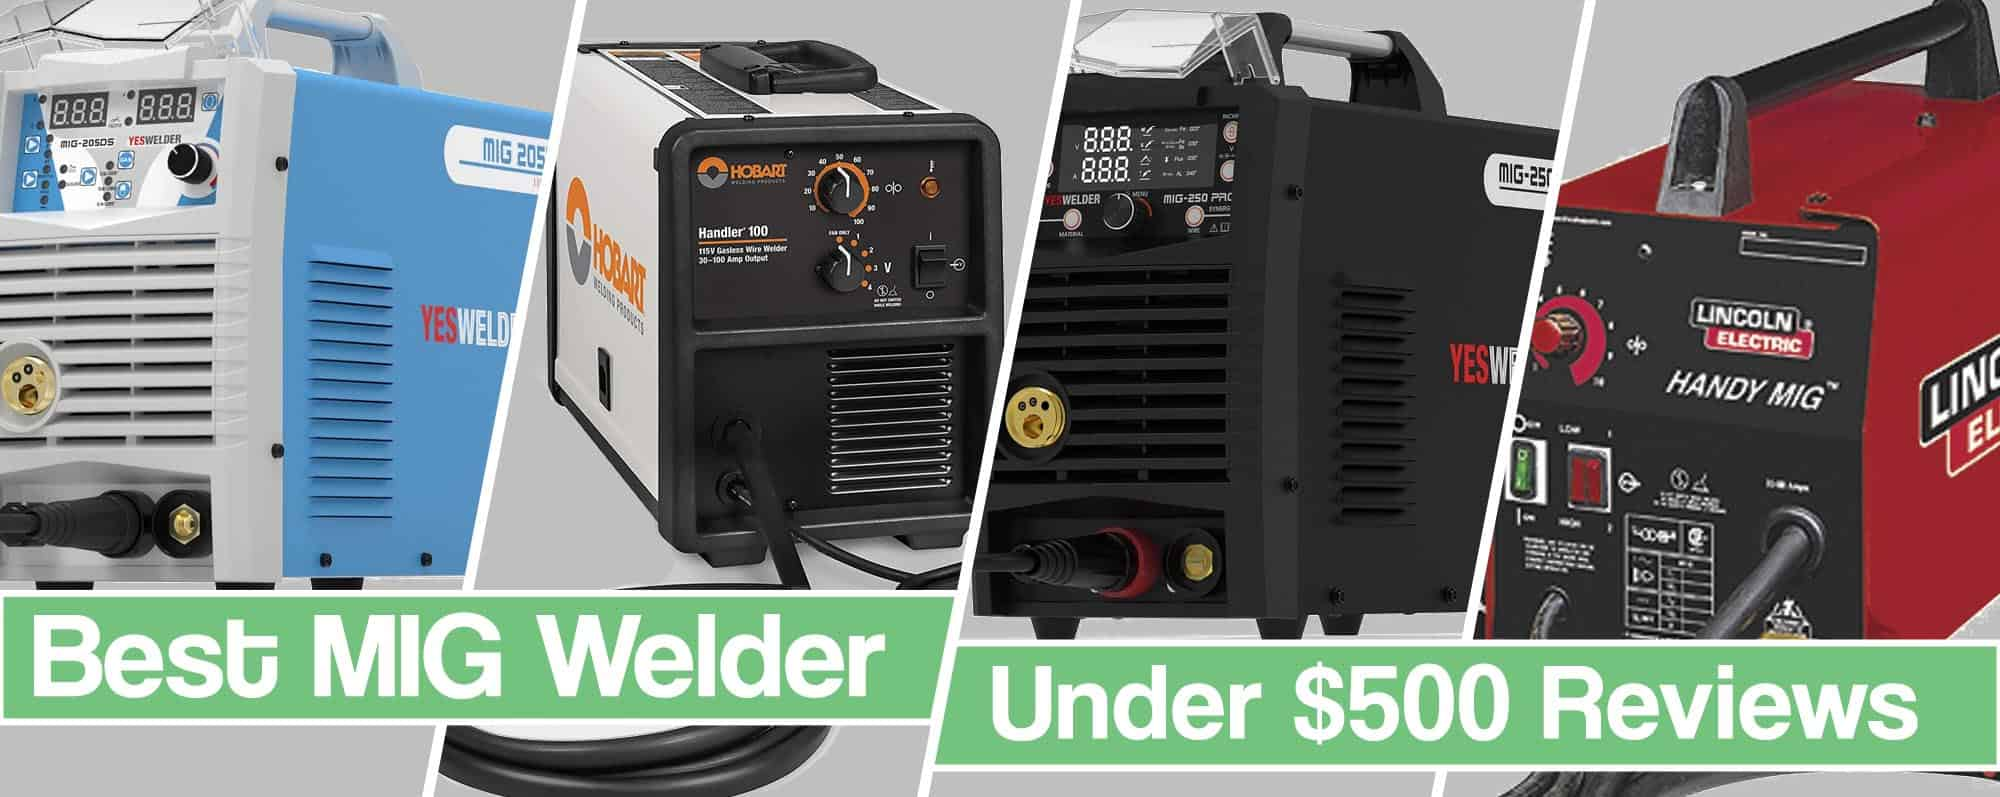 Feature image for Best MIG Welder Under $500 Review article